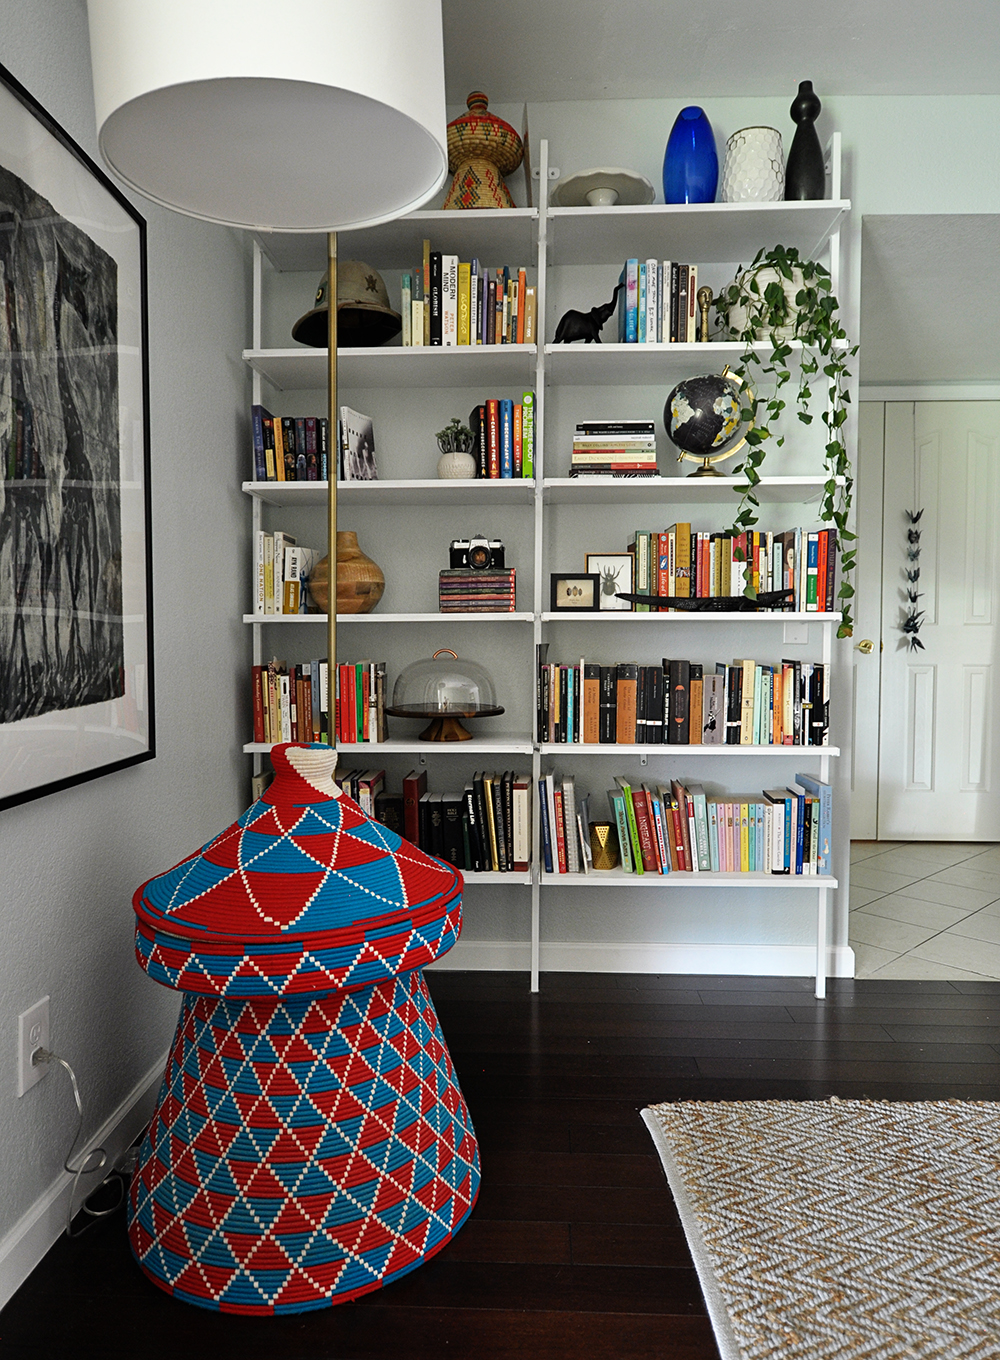 practical tips for combining two decorating styles to make a home that is a reflection of both of you